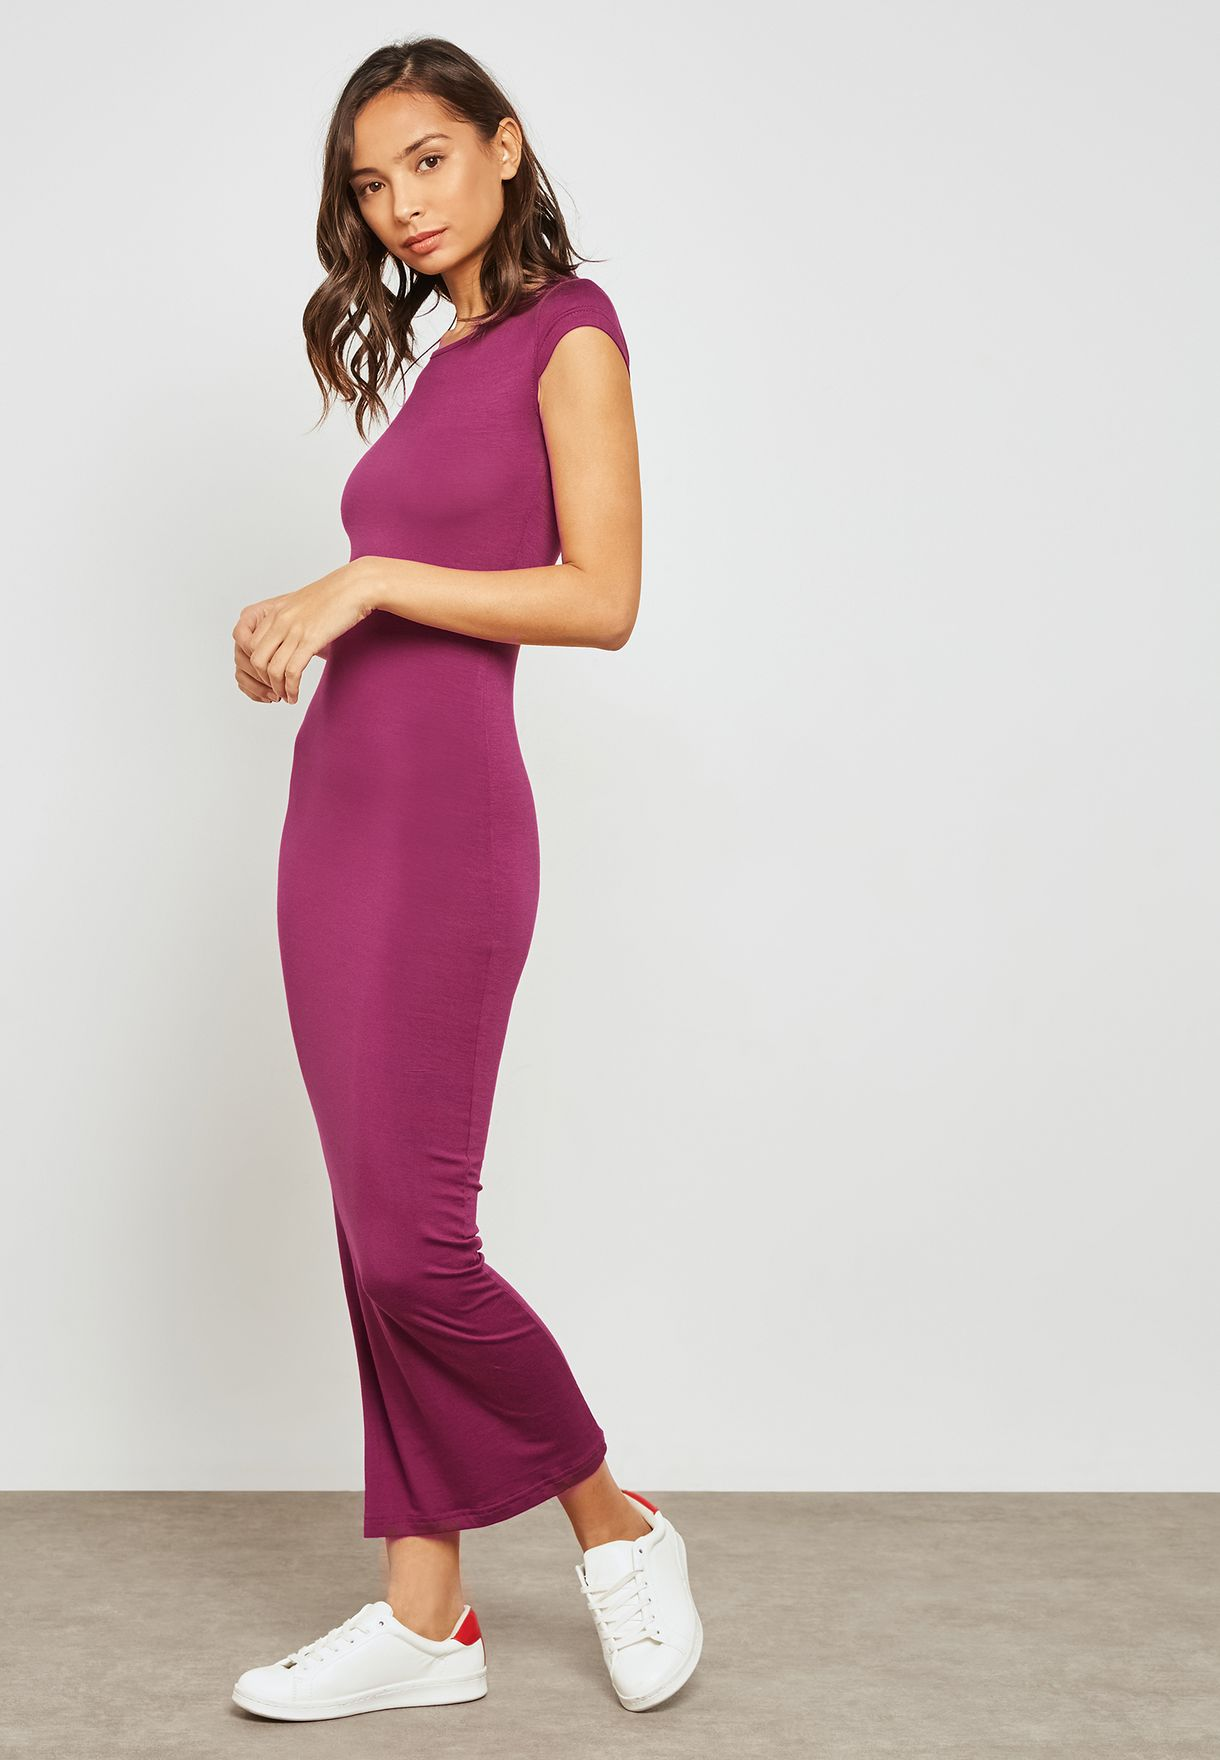 609832acd5 Shop Ginger Basics purple Bodycon Maxi Dress 02111705 for Women in ...